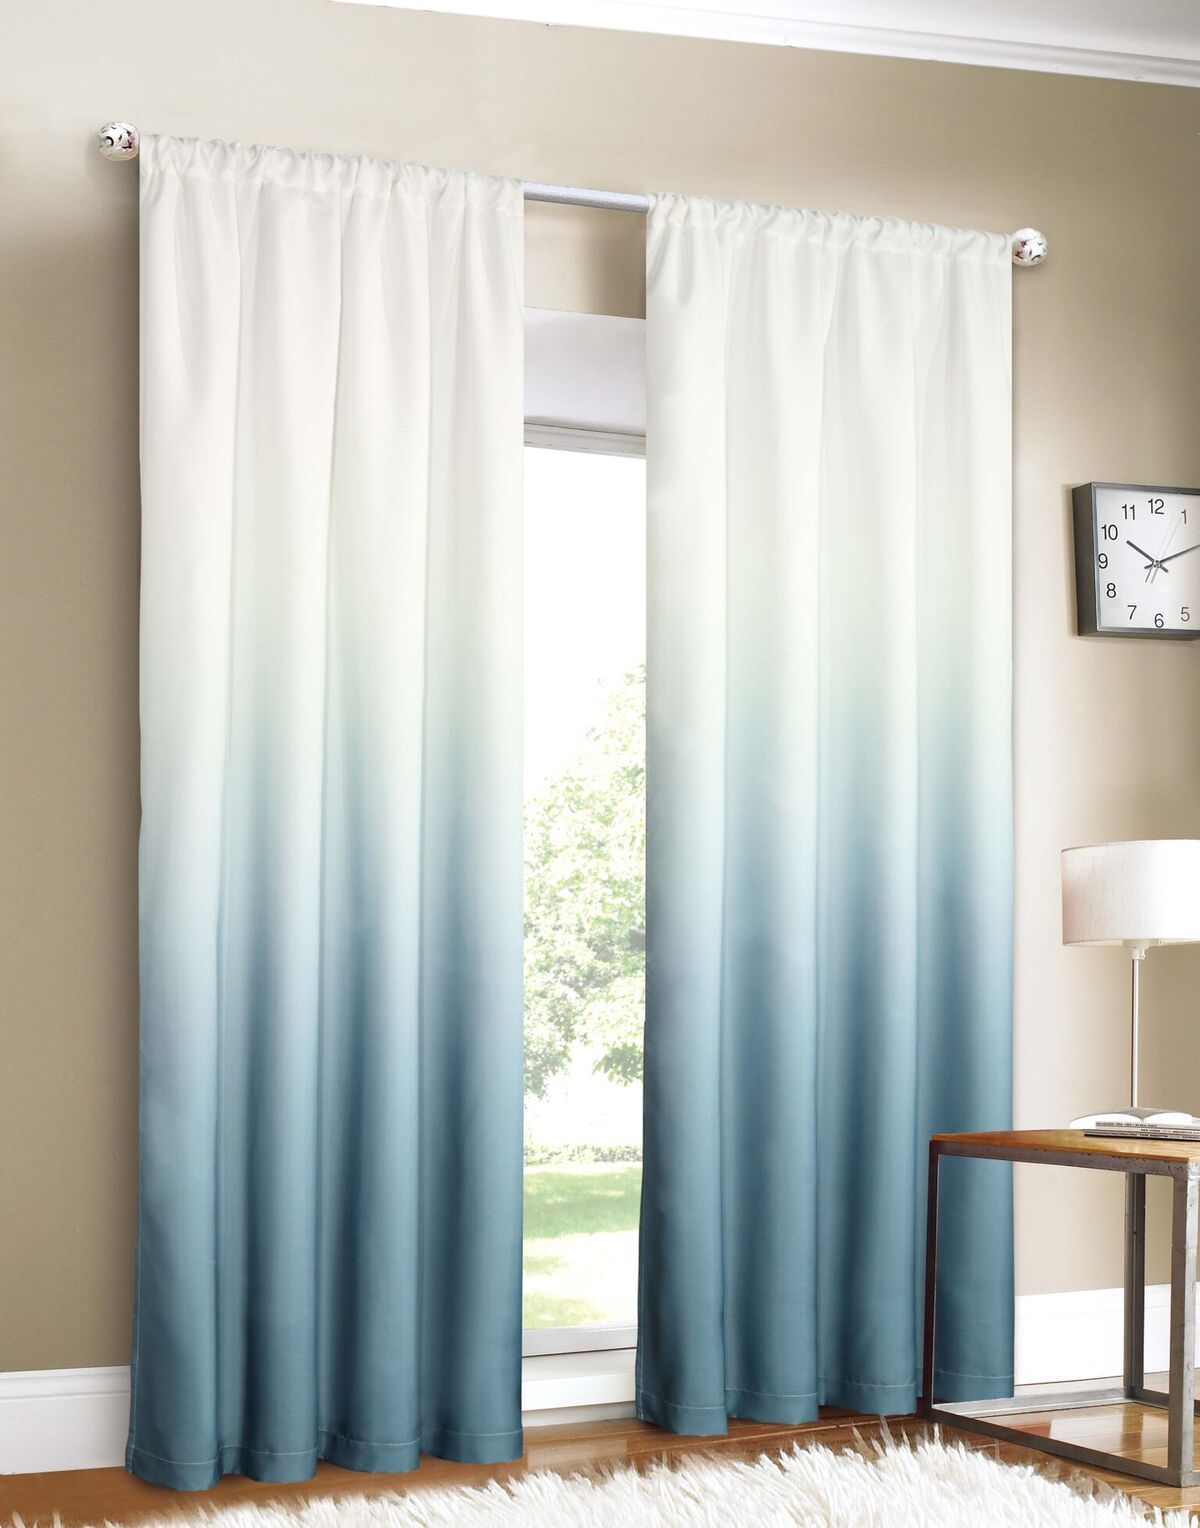 Set Of 2 Shades Rod Pocket Window Panel Curtains 40 X 84 Inches Total 80